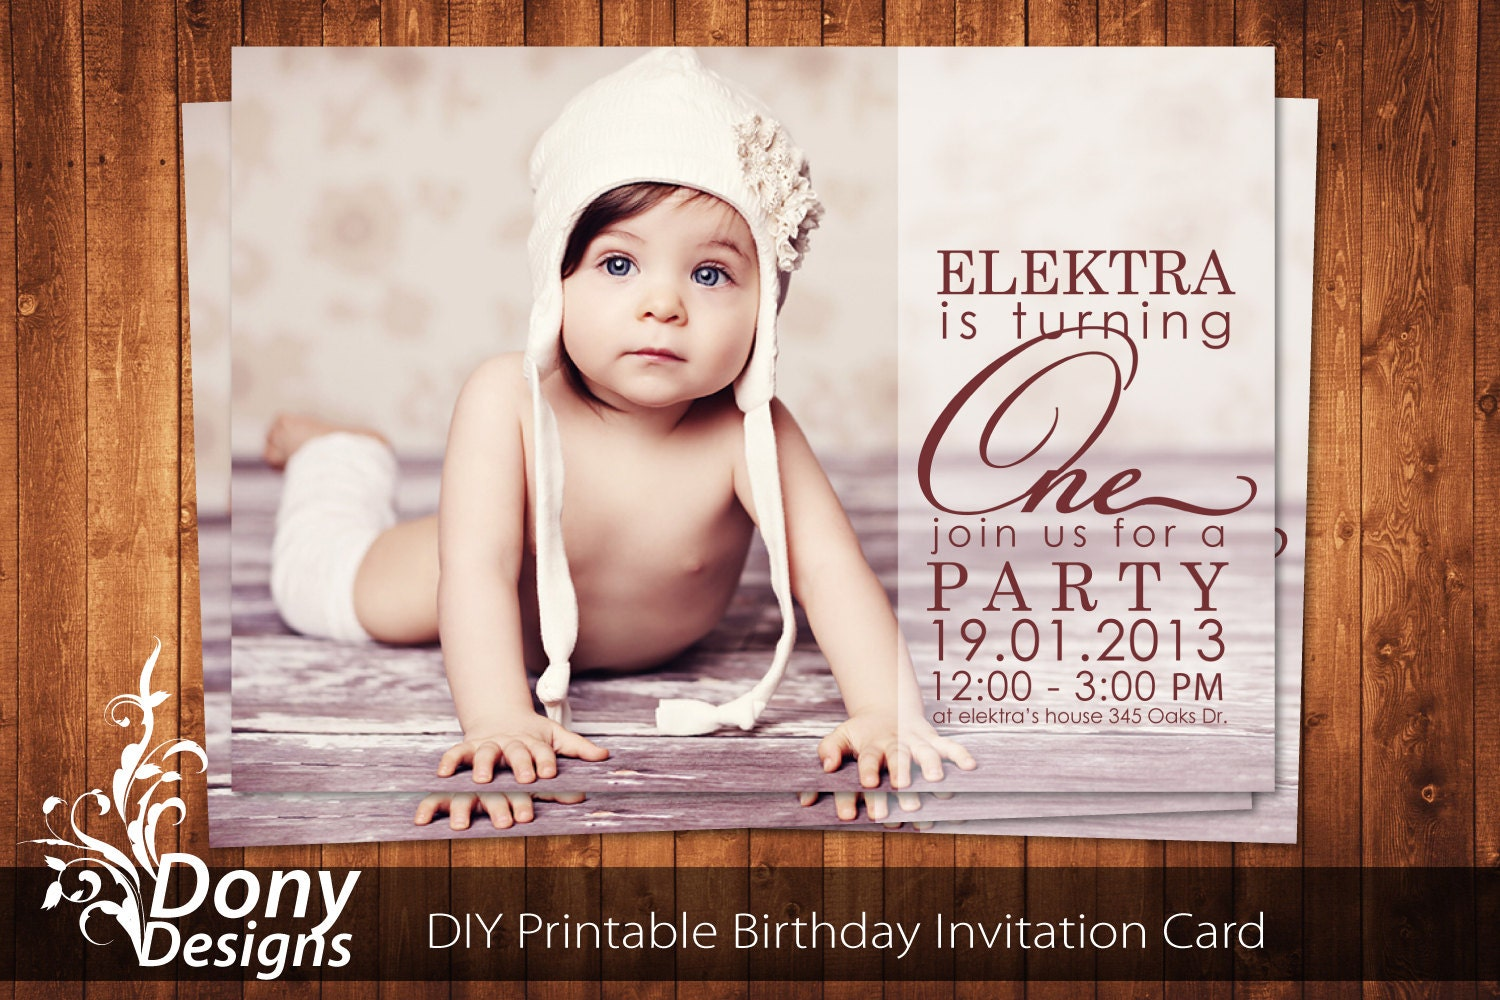 buy 1 get 1 free photo birthday invitation photocard photoshop. Black Bedroom Furniture Sets. Home Design Ideas